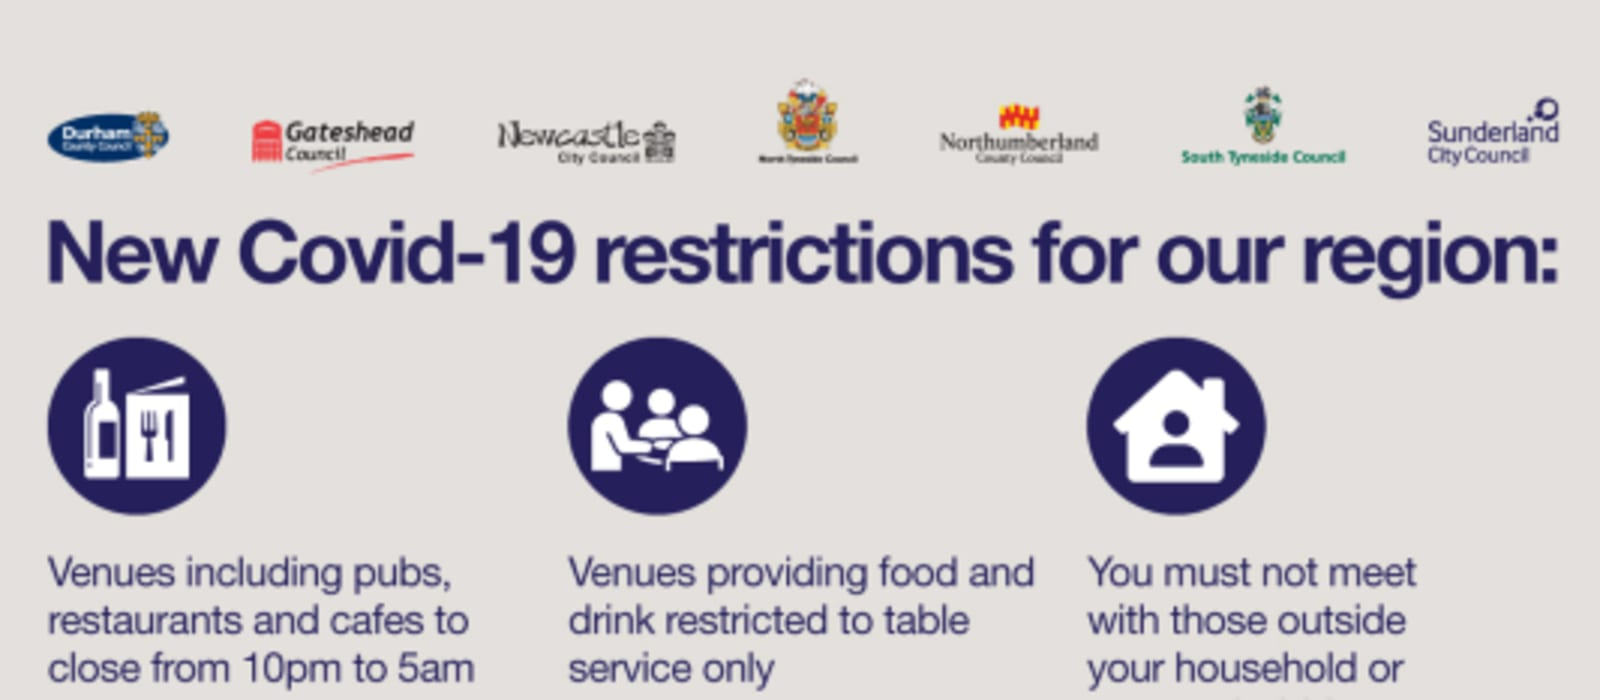 New Covid-19 restrictions in force for the North East